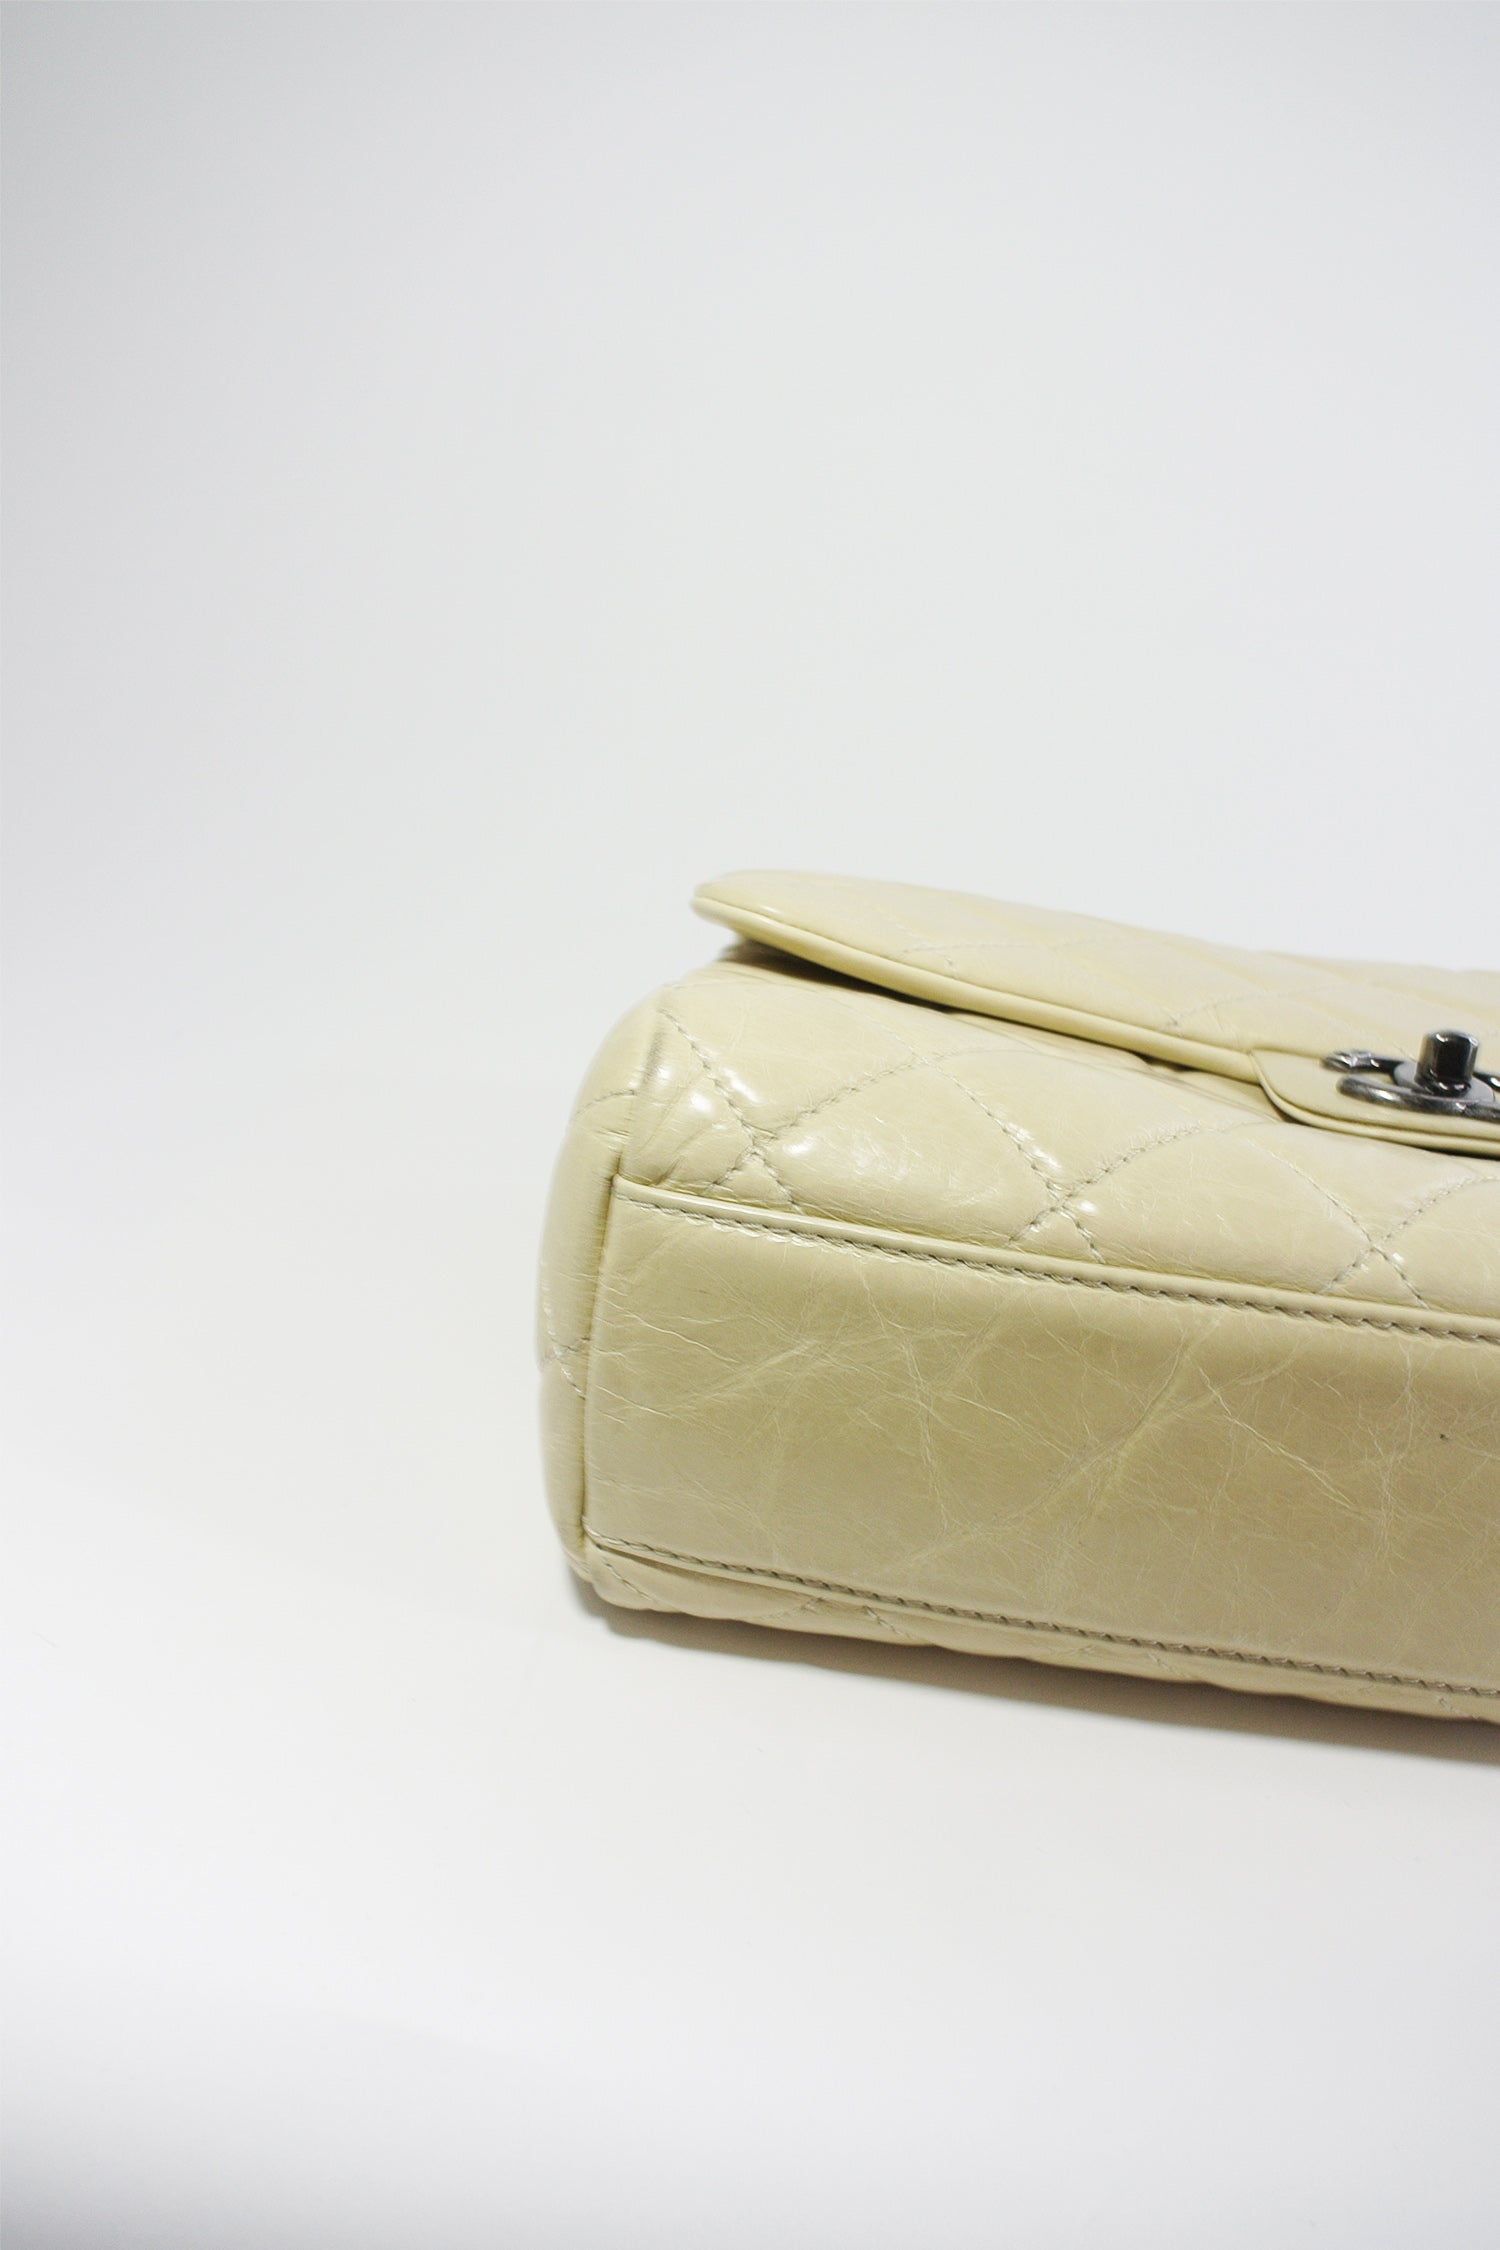 Chanel Beige Quilted Single Flap Bag